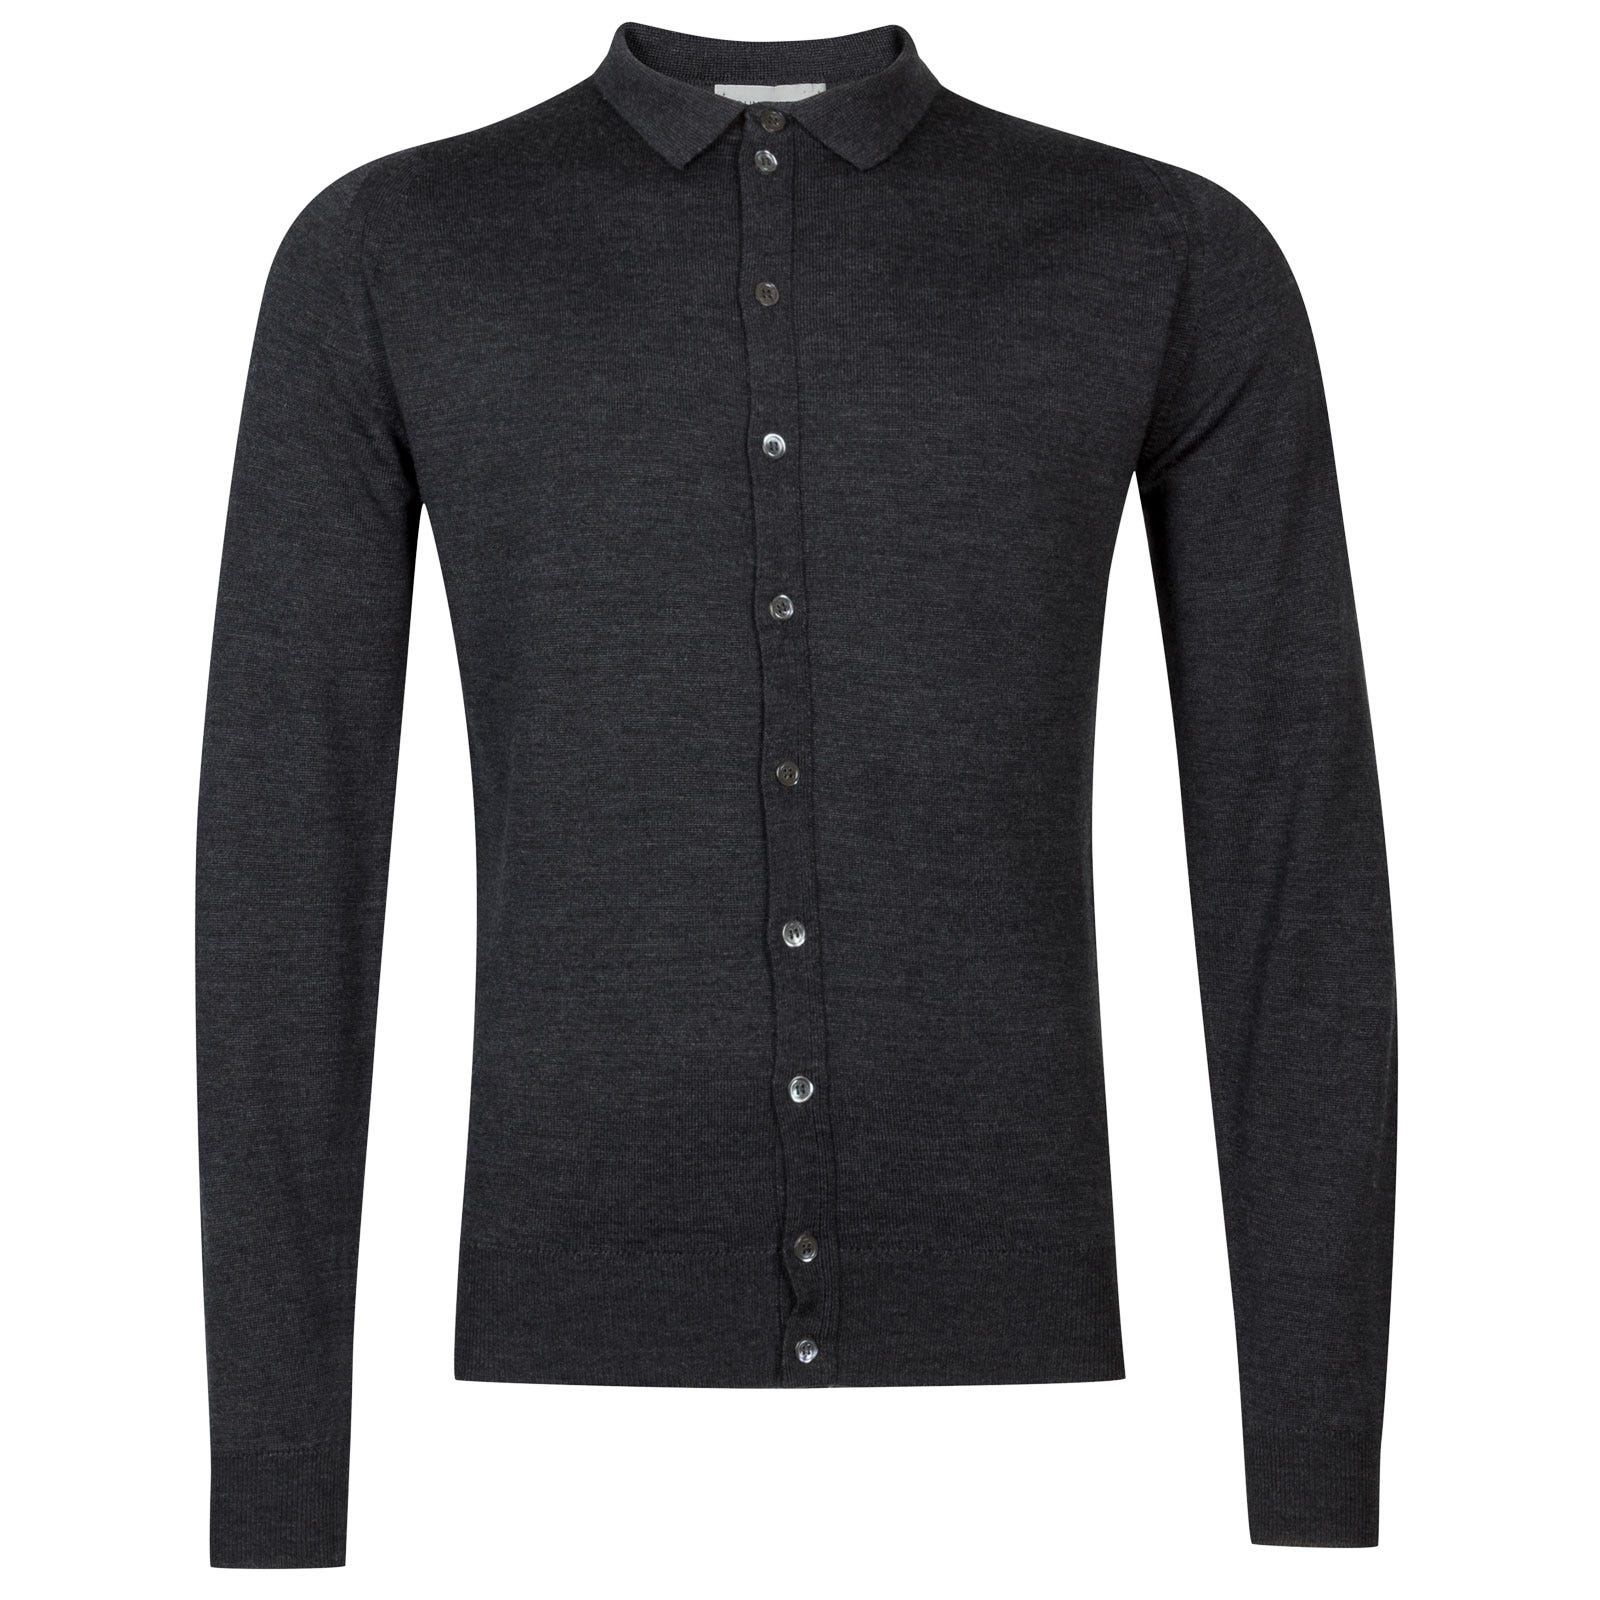 John Smedley parwish Merino Wool Shirt in Charcoal-S